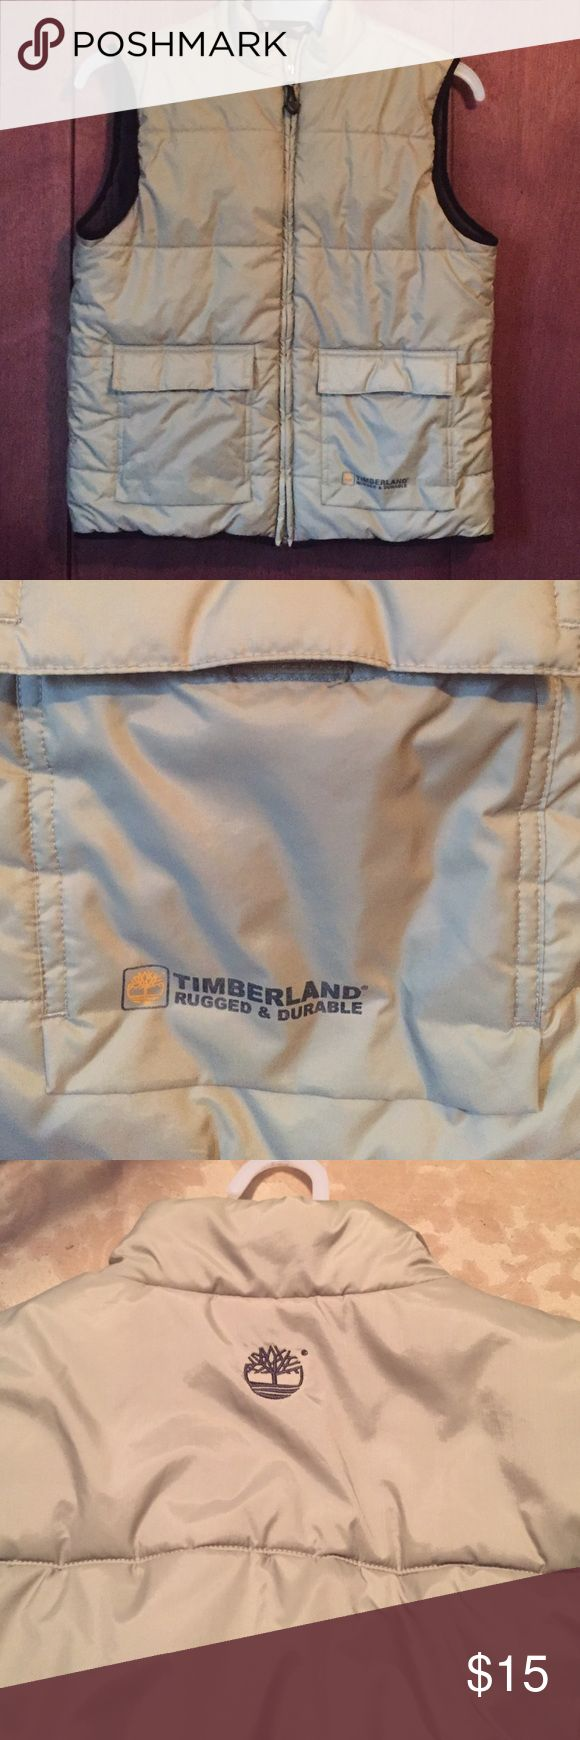 Boys Timberland beige zip up vest sz L Boys size large Timberland beige zip up vest two front velcro pockets inside is soft gray fleece excellent condition Timberland Jackets & Coats Vests